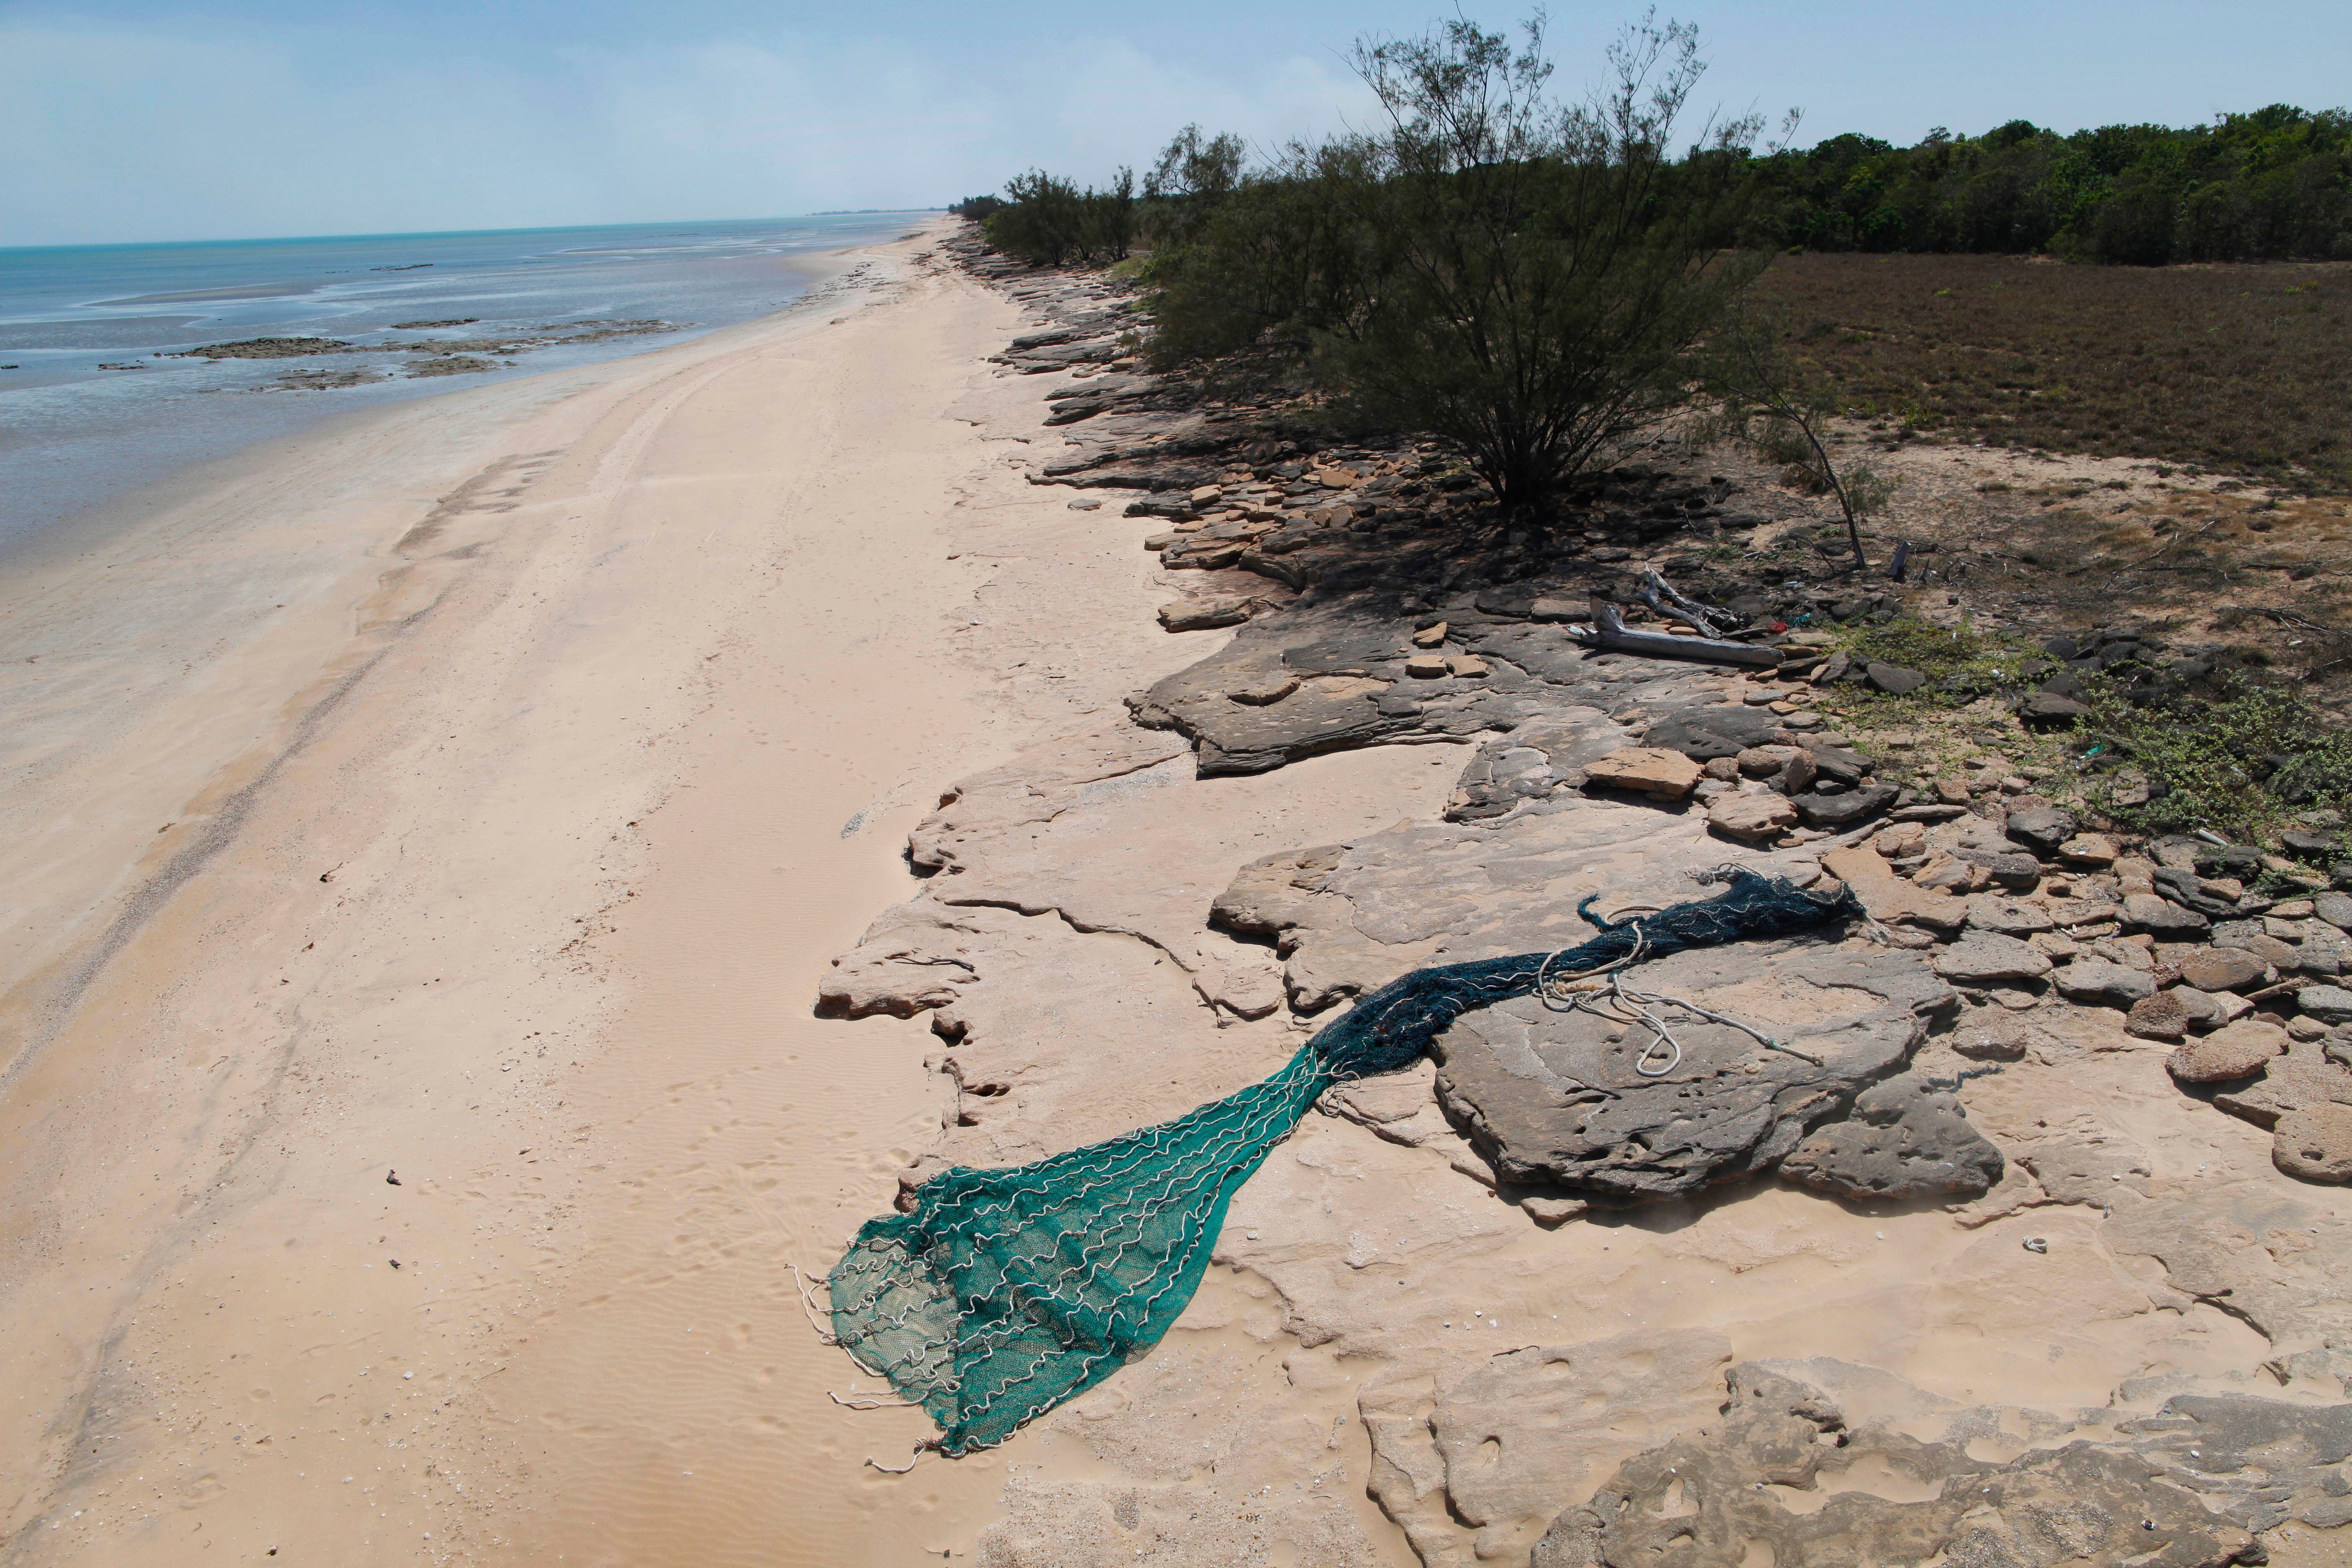 A fishing net washed up on a beach